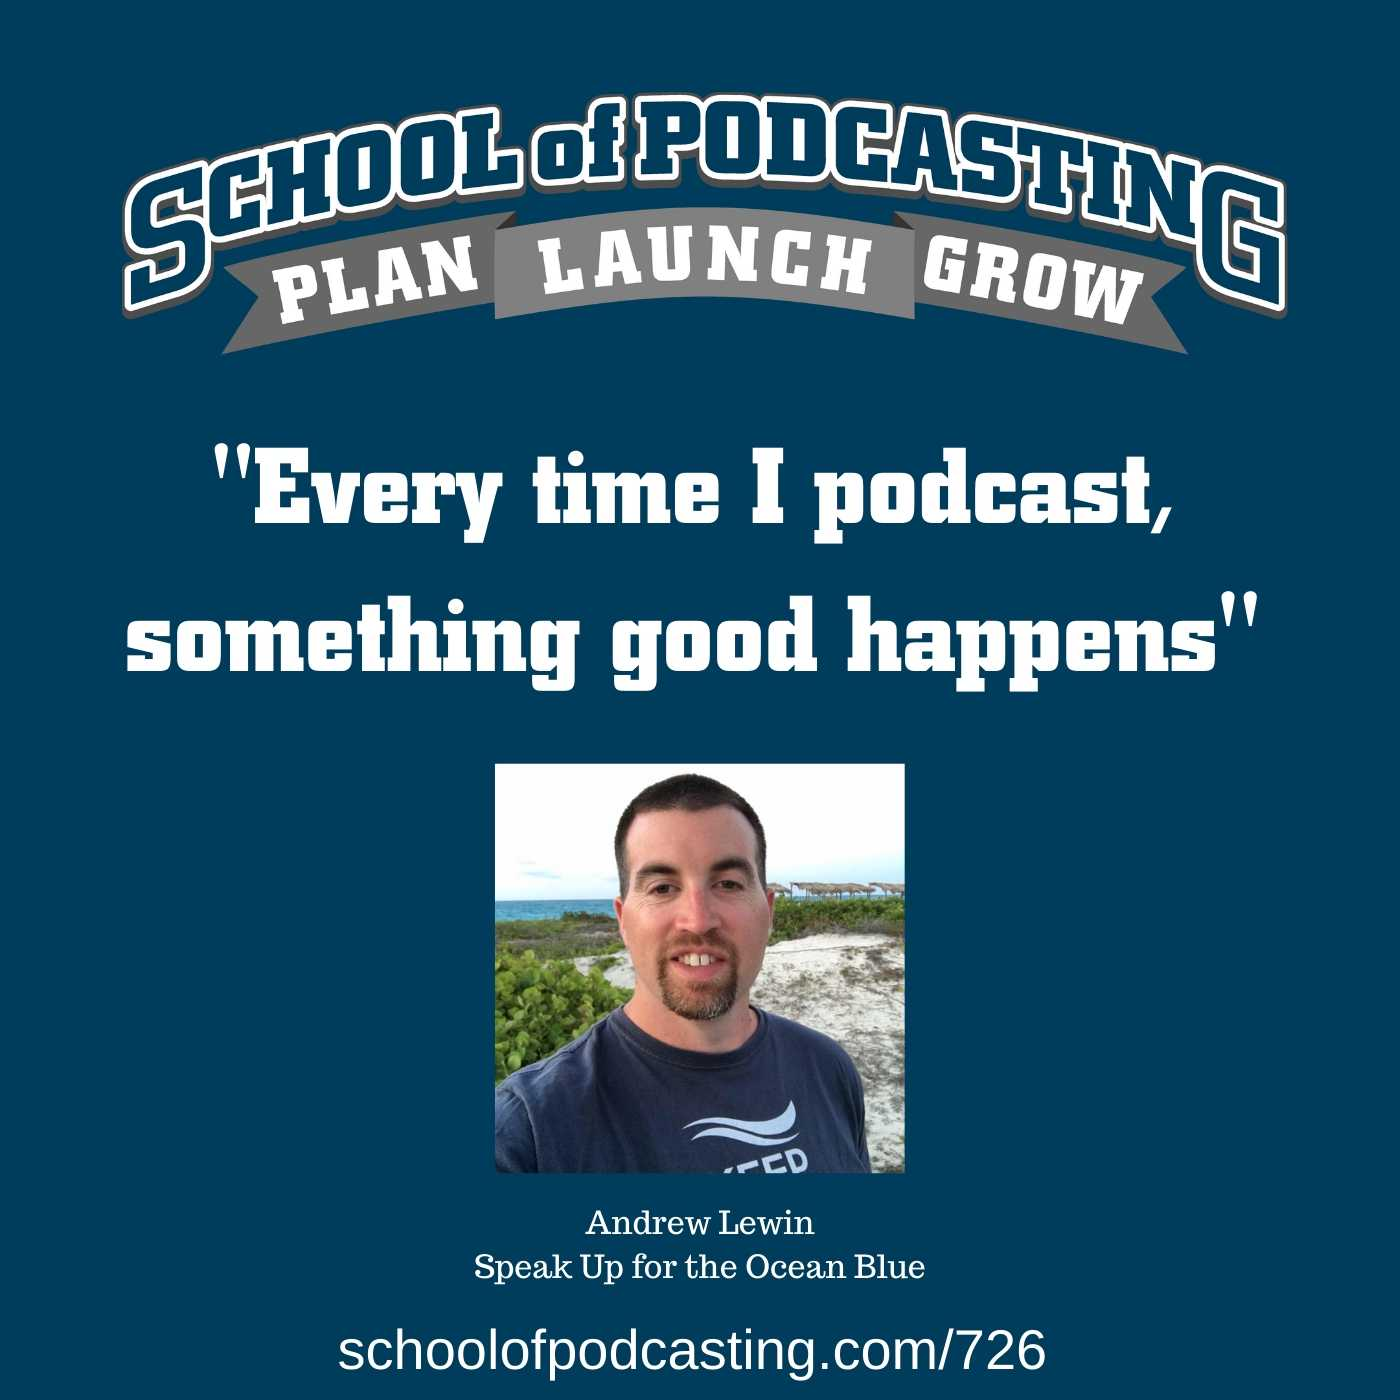 Every time I podcast something good happens - Andrew Lewin Interview